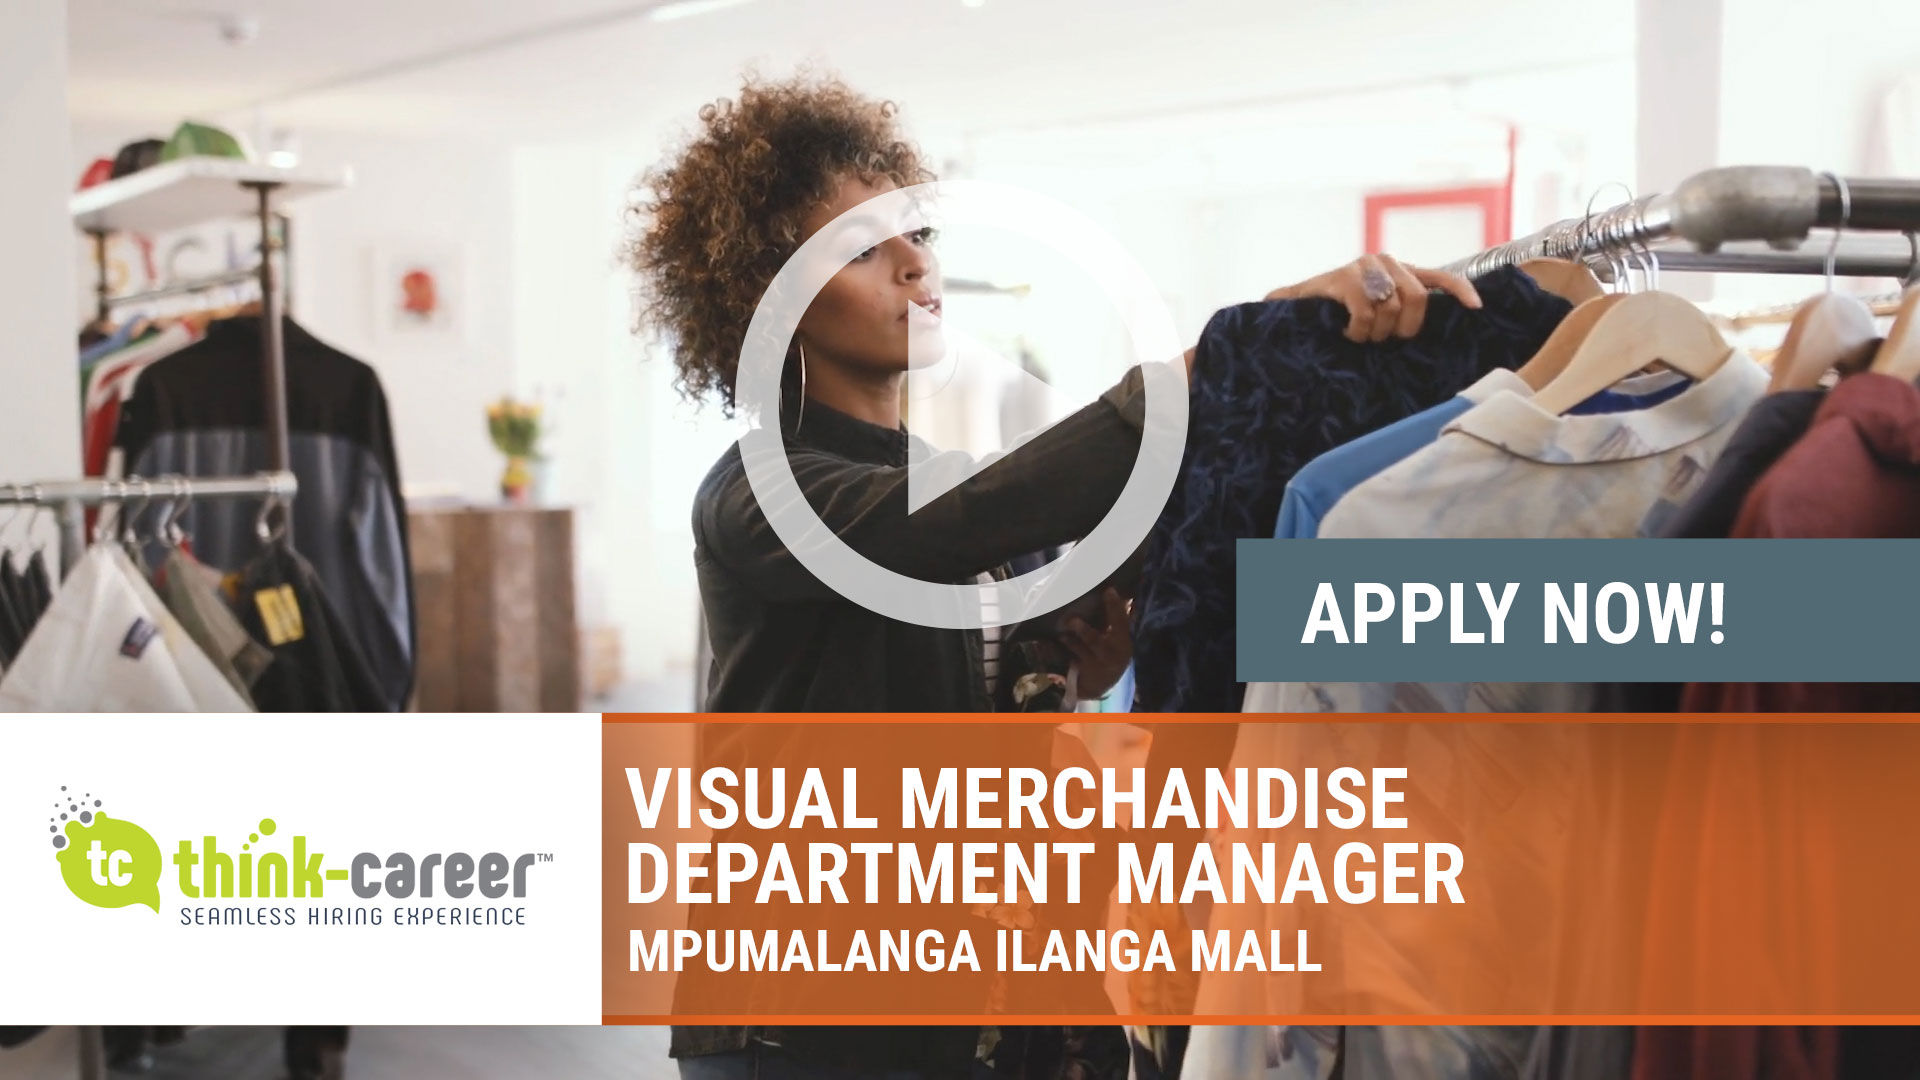 Watch our careers video for available job opening Visual Merchandise Department Manager in Mpumalanga Ilanga Mall